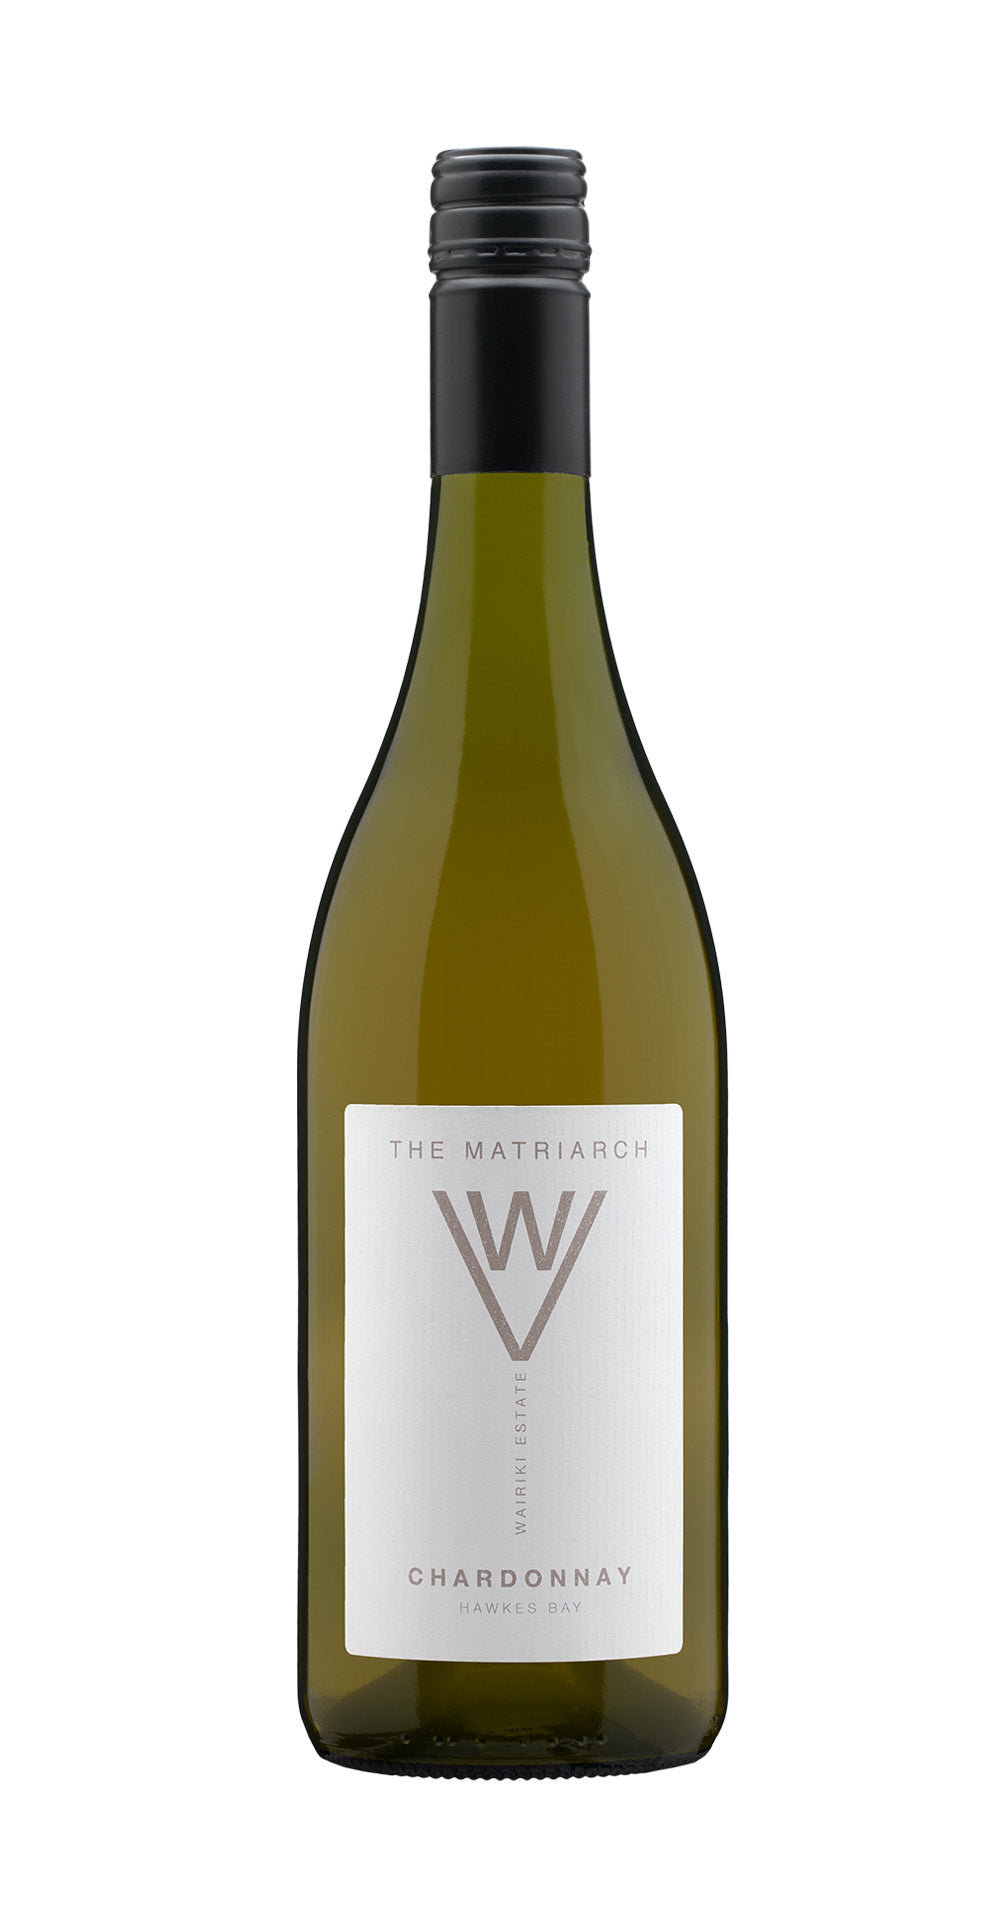 The Matriarch Chardonnay 2019